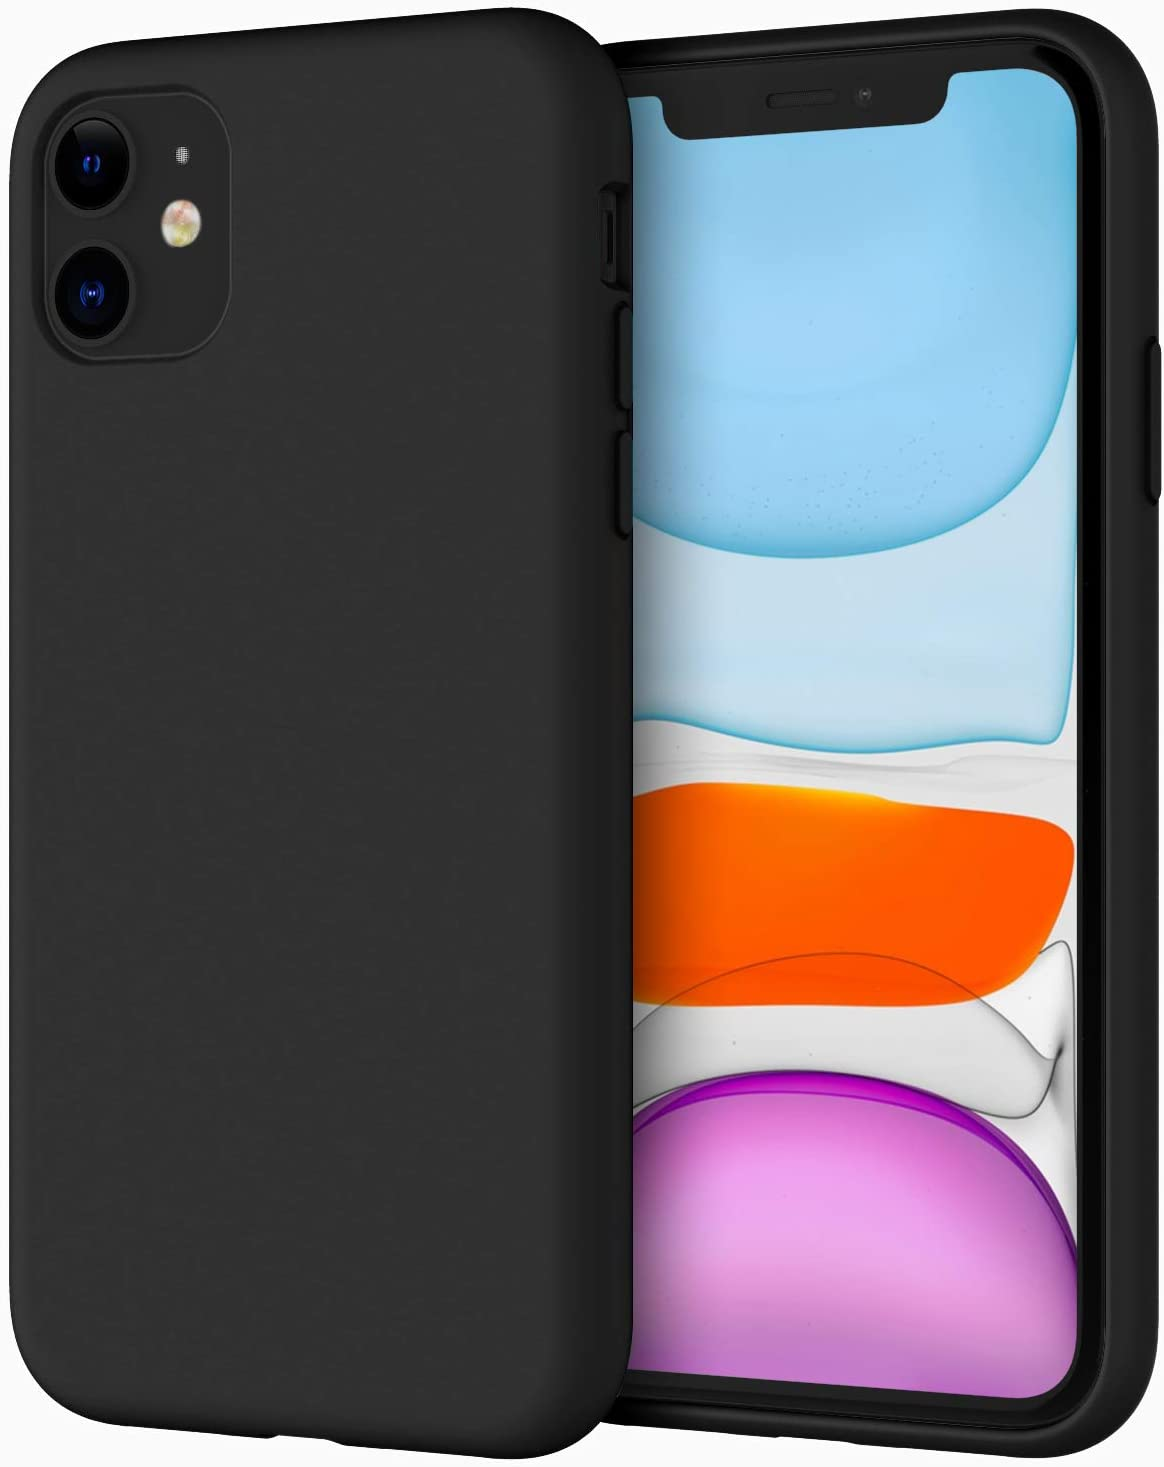 JETech Silicone Case for iPhone 11 (2019) 6.1-Inch, Silky-Soft Touch Full-Body Protective Case, Shockproof Cover with Microfiber Lining (Black)